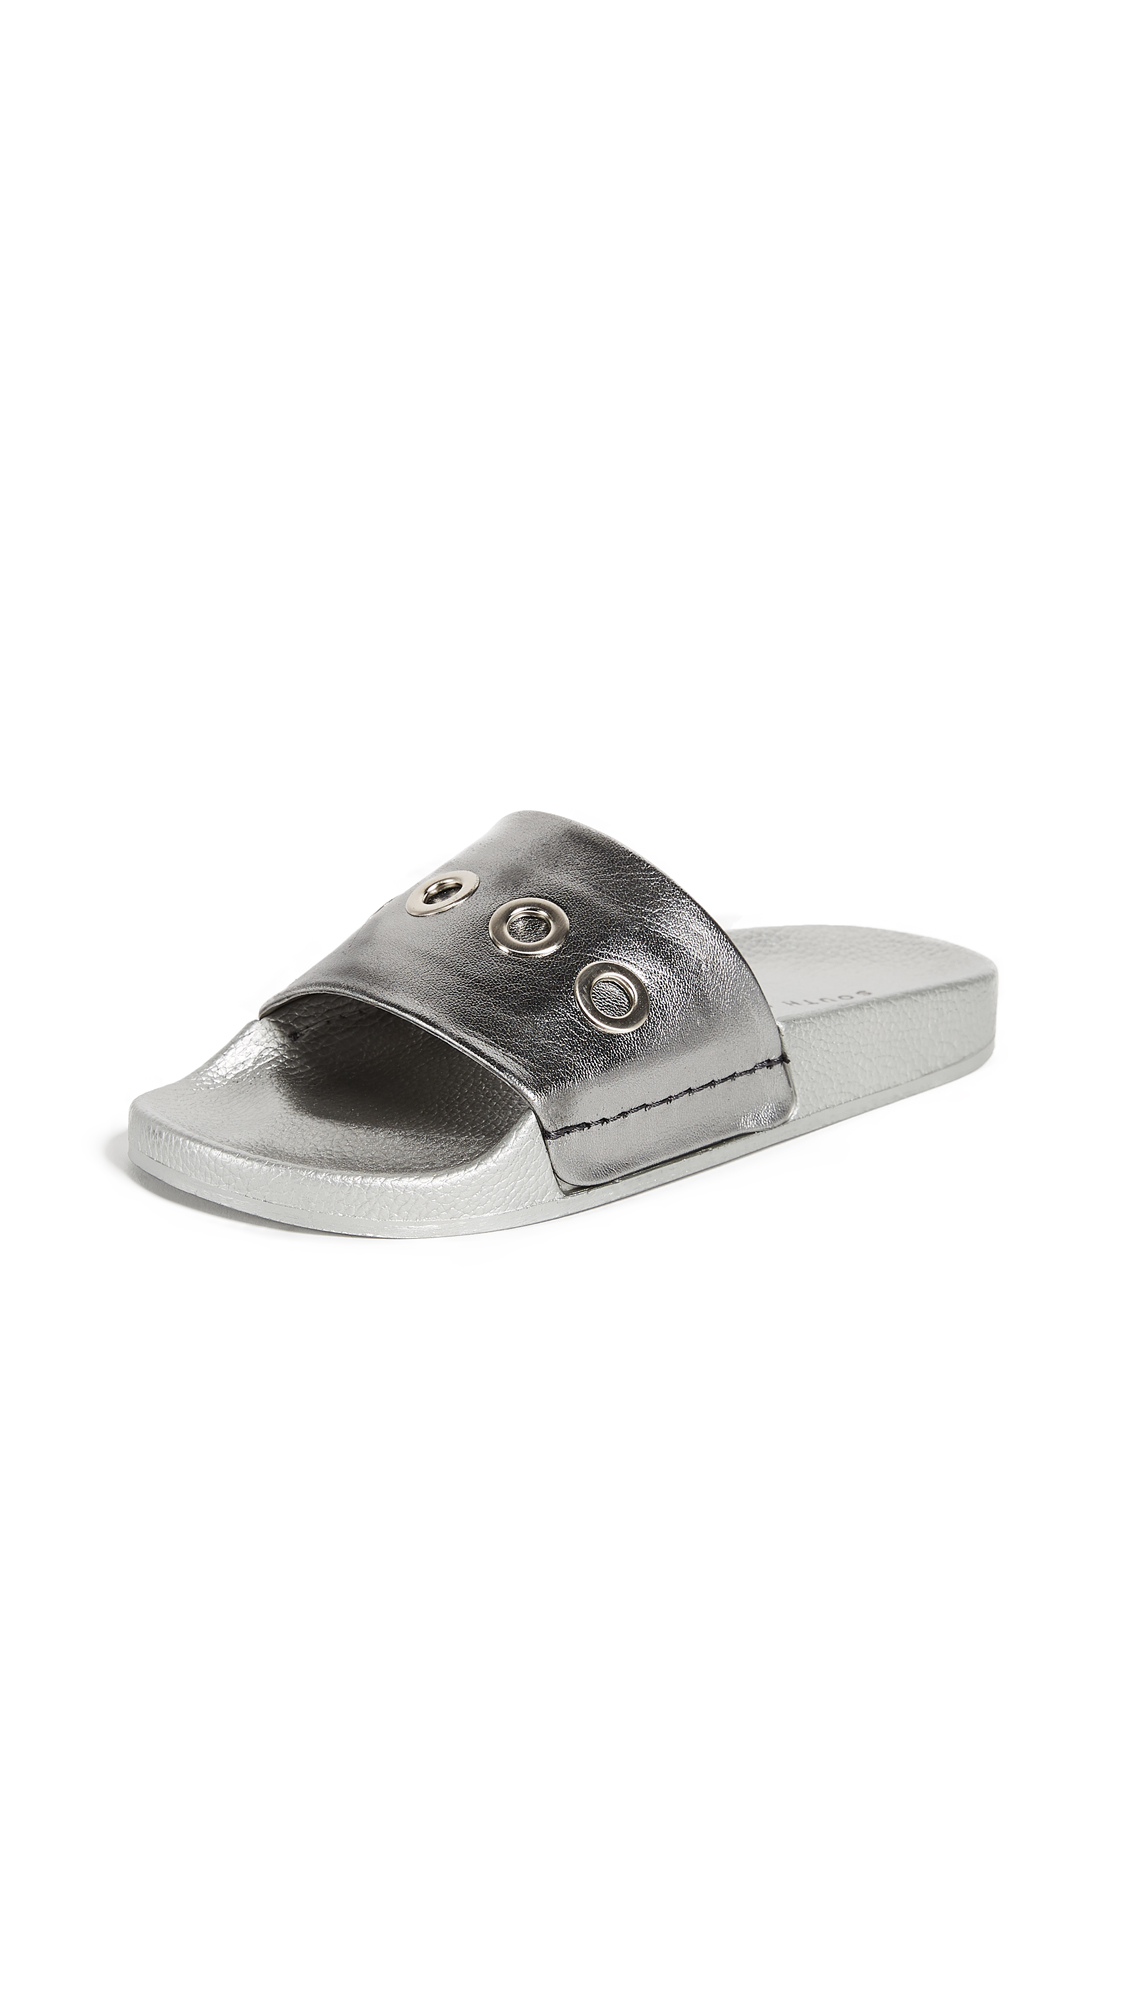 South Parade Eyelet Slides - Dark Silver